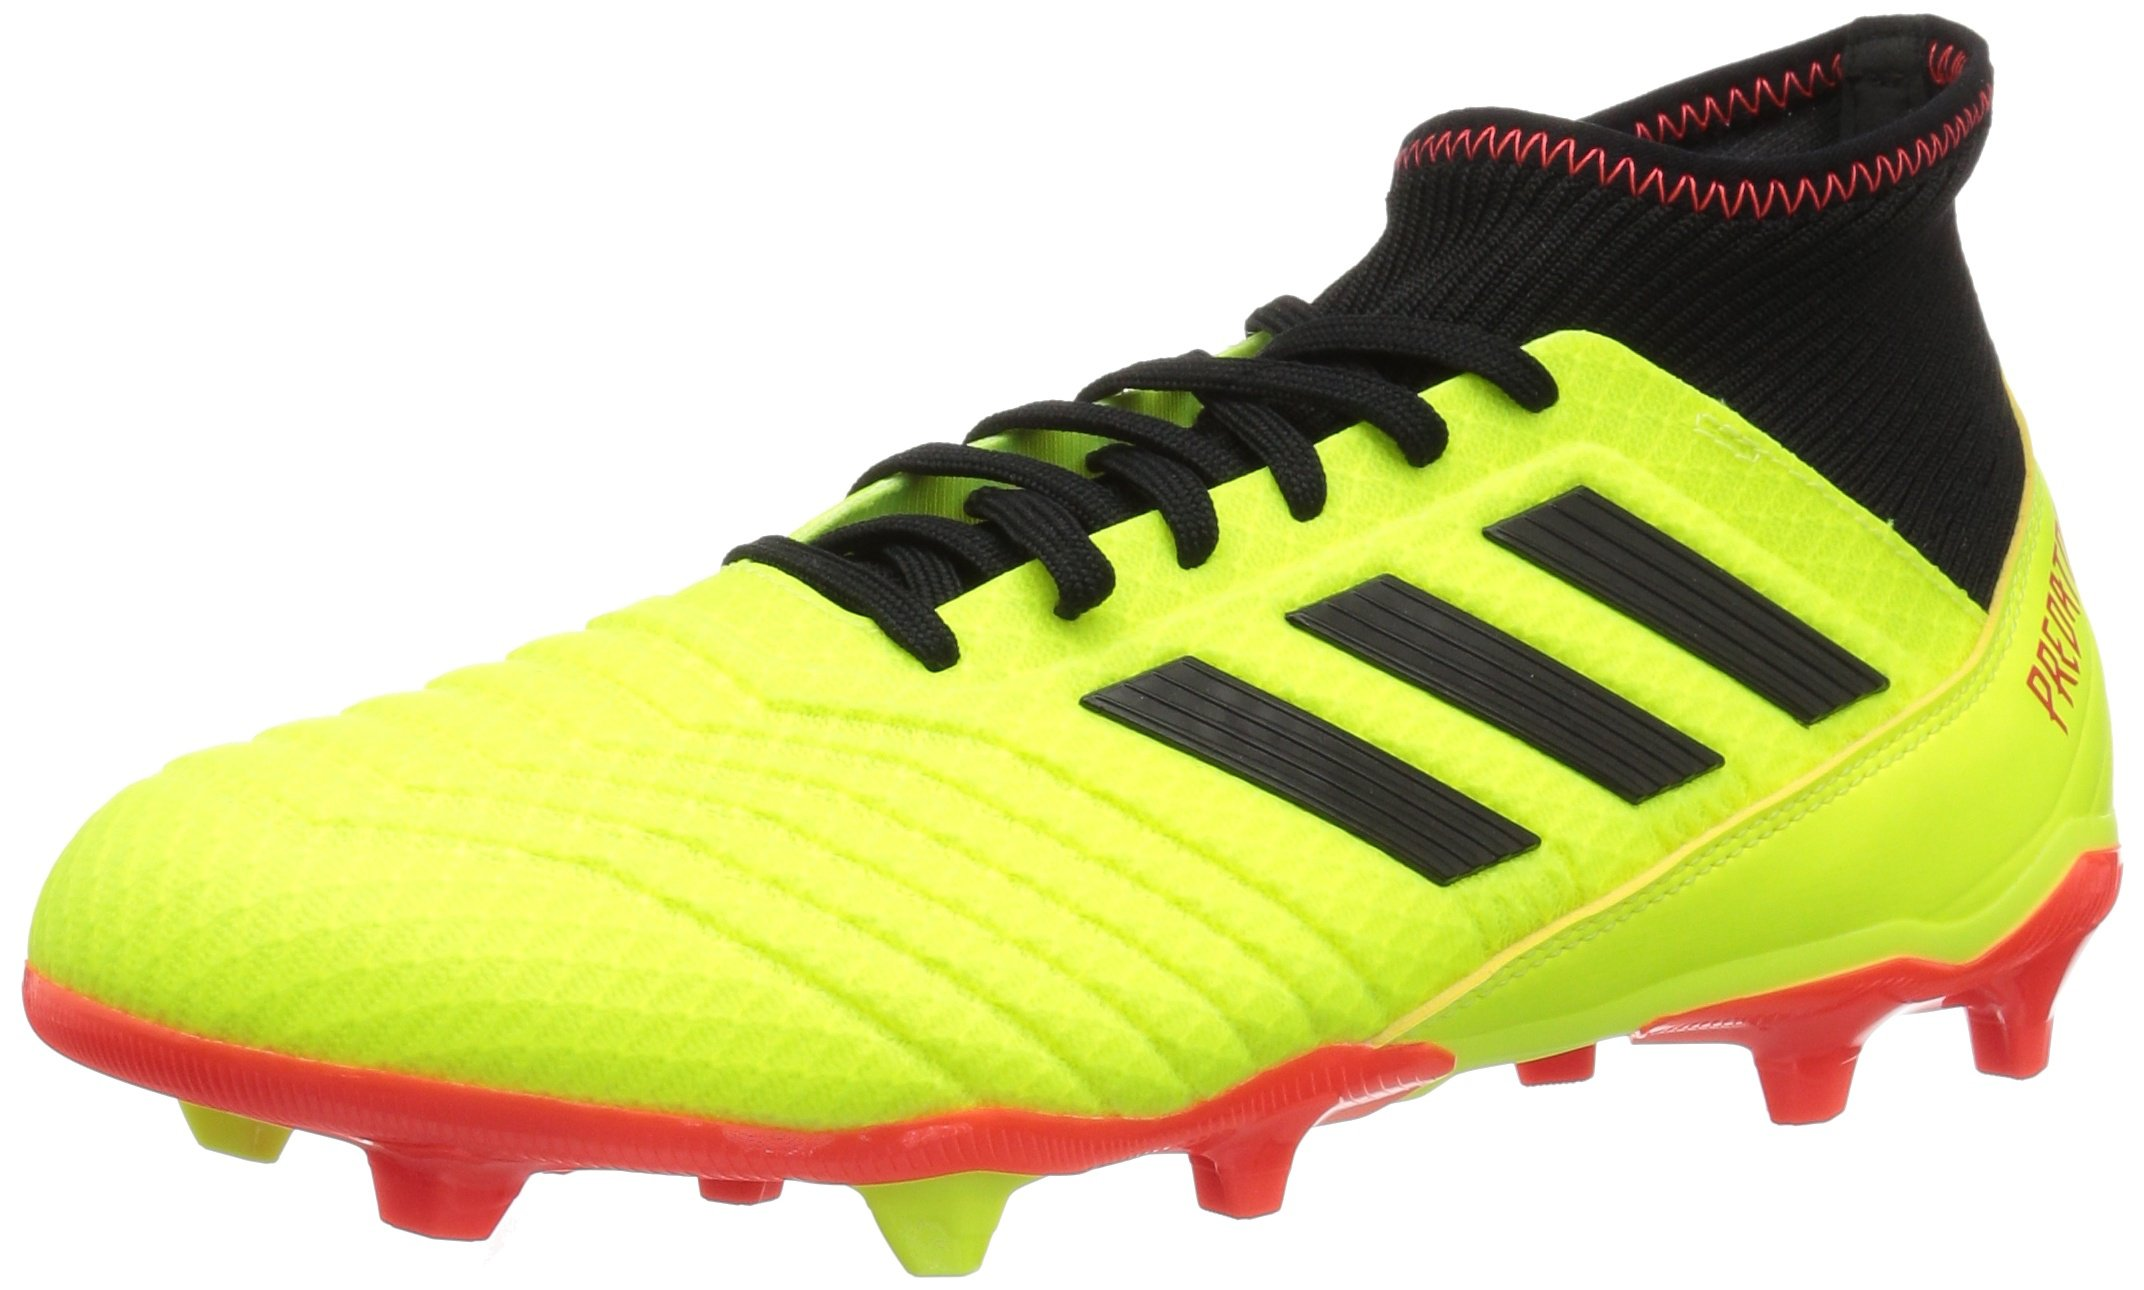 adidas Men's Predator 18.3 Firm Ground Soccer Shoe, Solar Yellow/Black/Solar Red, 12.5 M US by adidas